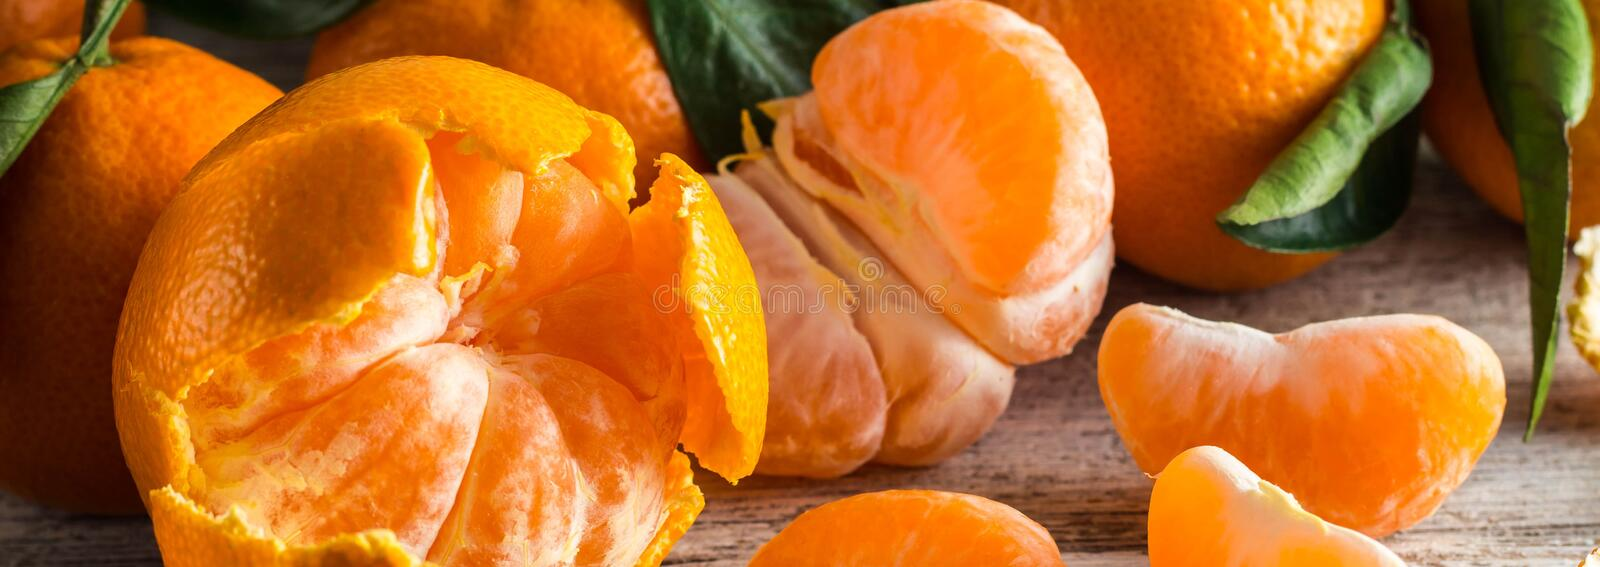 Banner of orange tangerines with green leaves on white wooden background. Peeled mandarin slices stock images